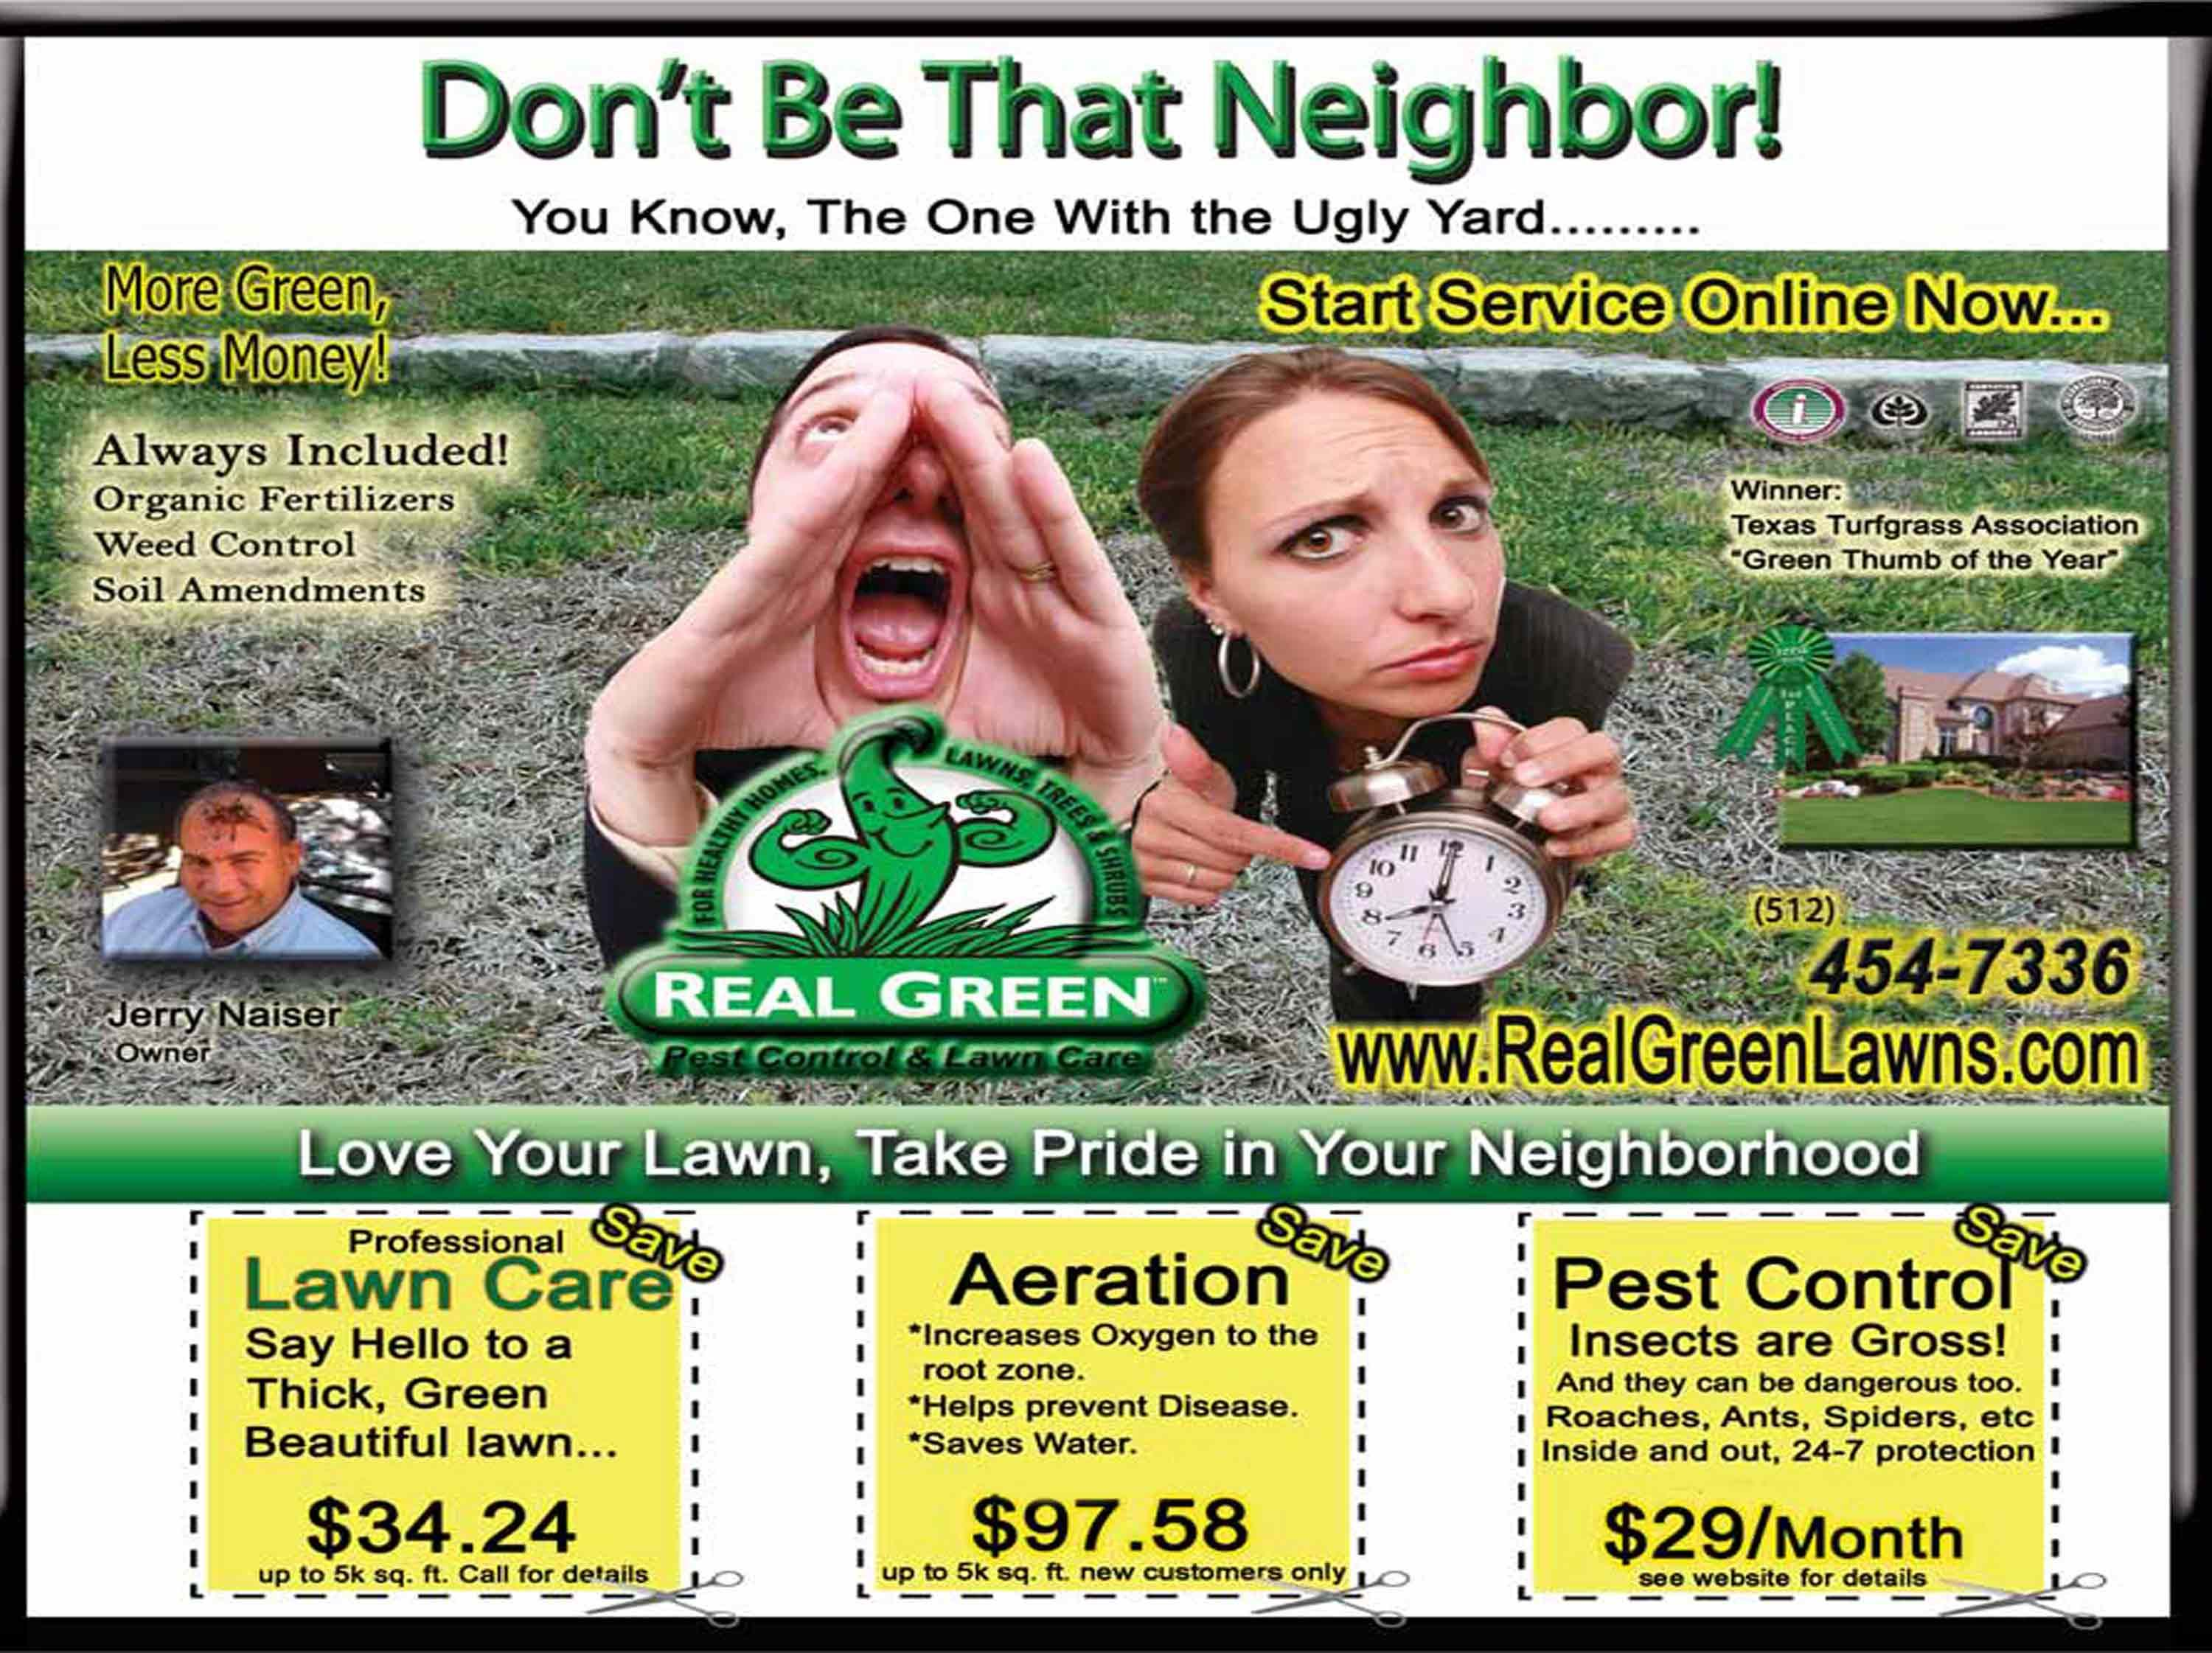 lawn service flyer templates landscapeing flyer templates lawn lawn service flyer templates landscapeing flyer templates lawn